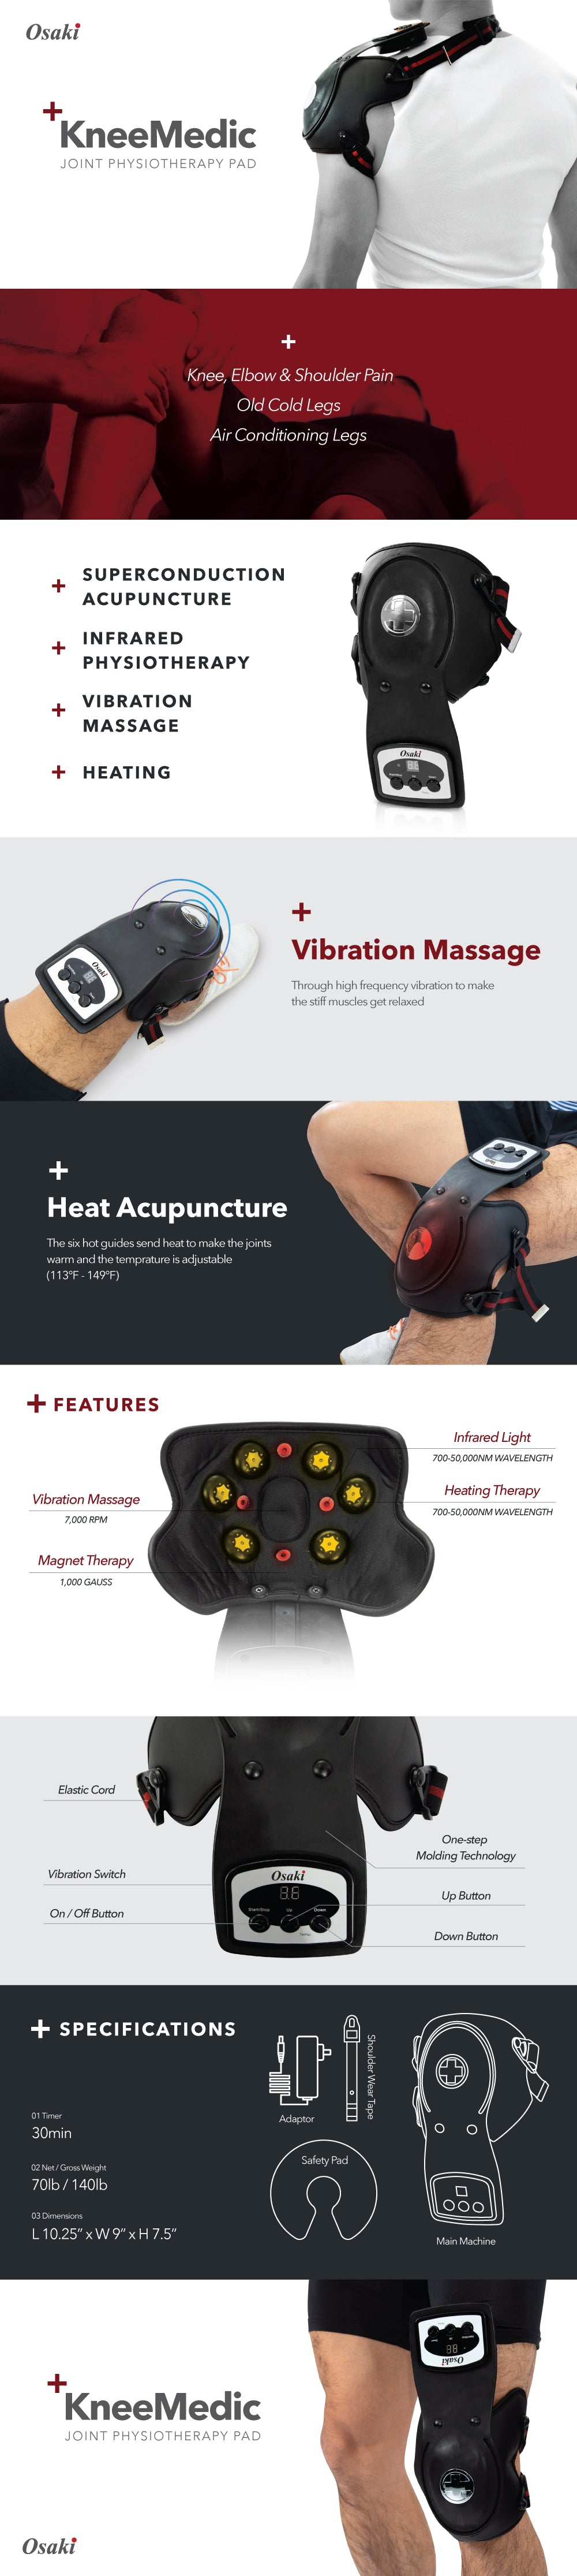 Osaki KneeMedic PAD - Super-conduction Acupuncture, infrared physiotherapy, vibration massage, heating